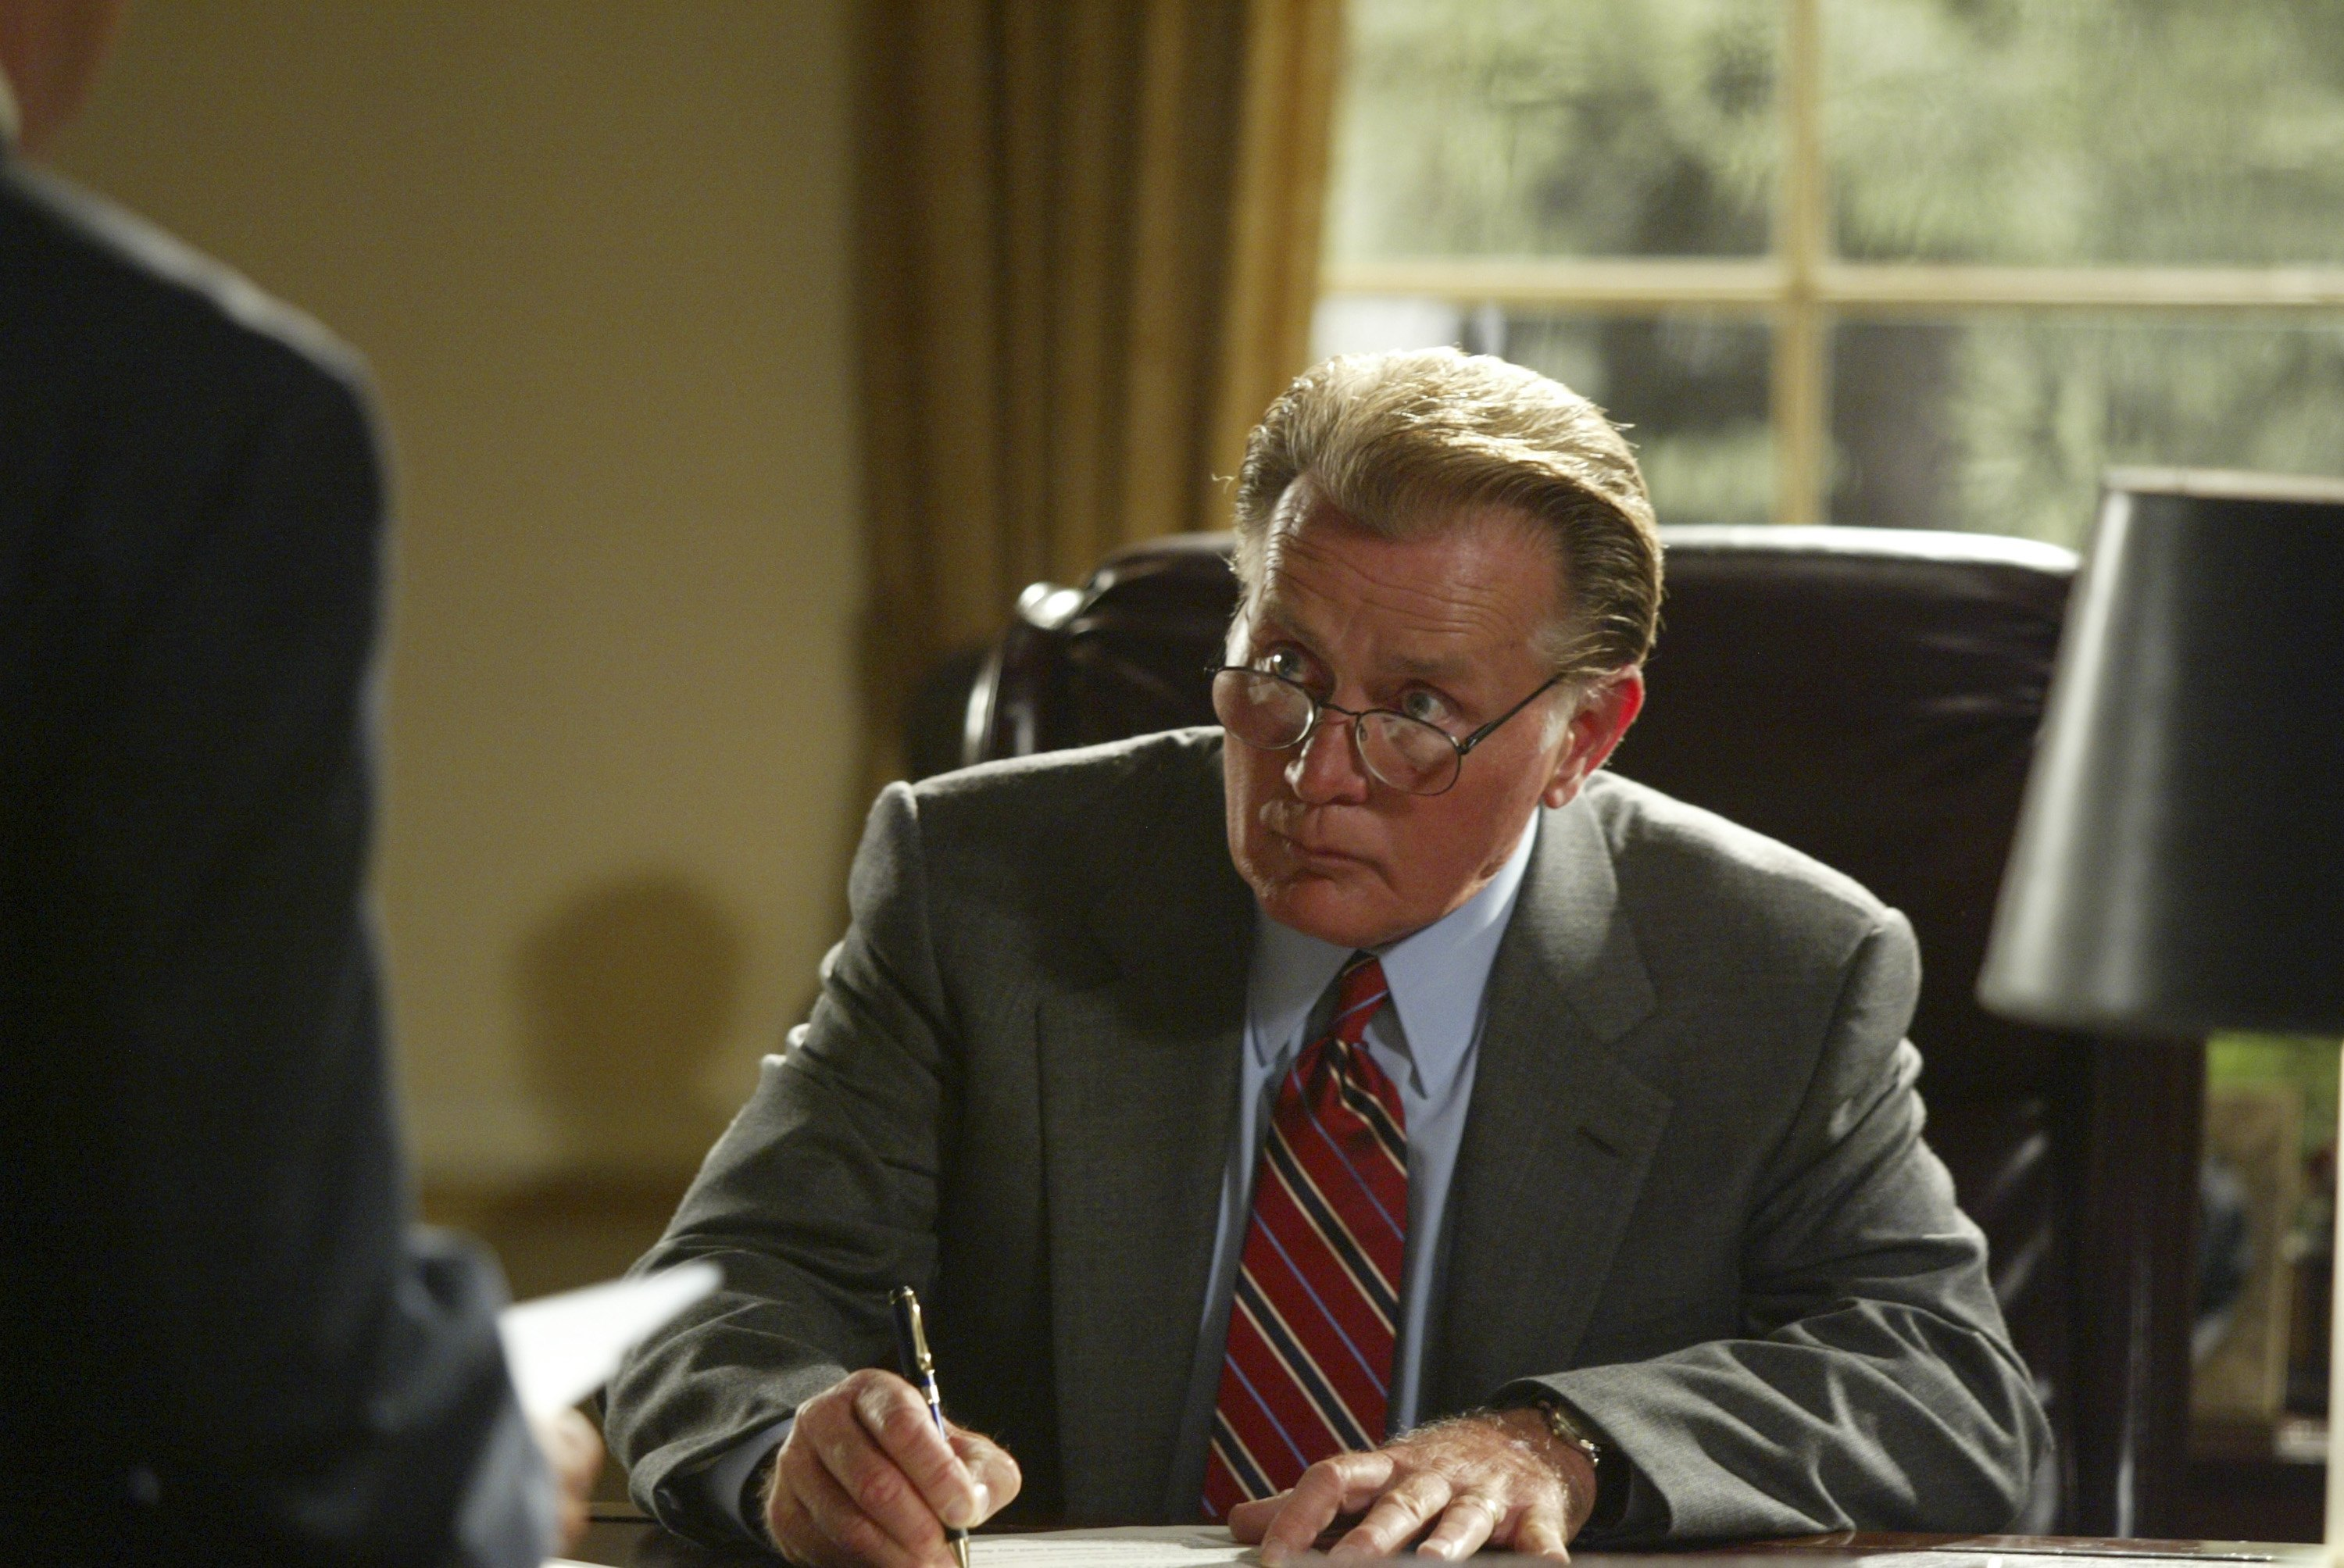 Martin Sheen as President Josiah  Jed  Bartlet in  The West Wing .